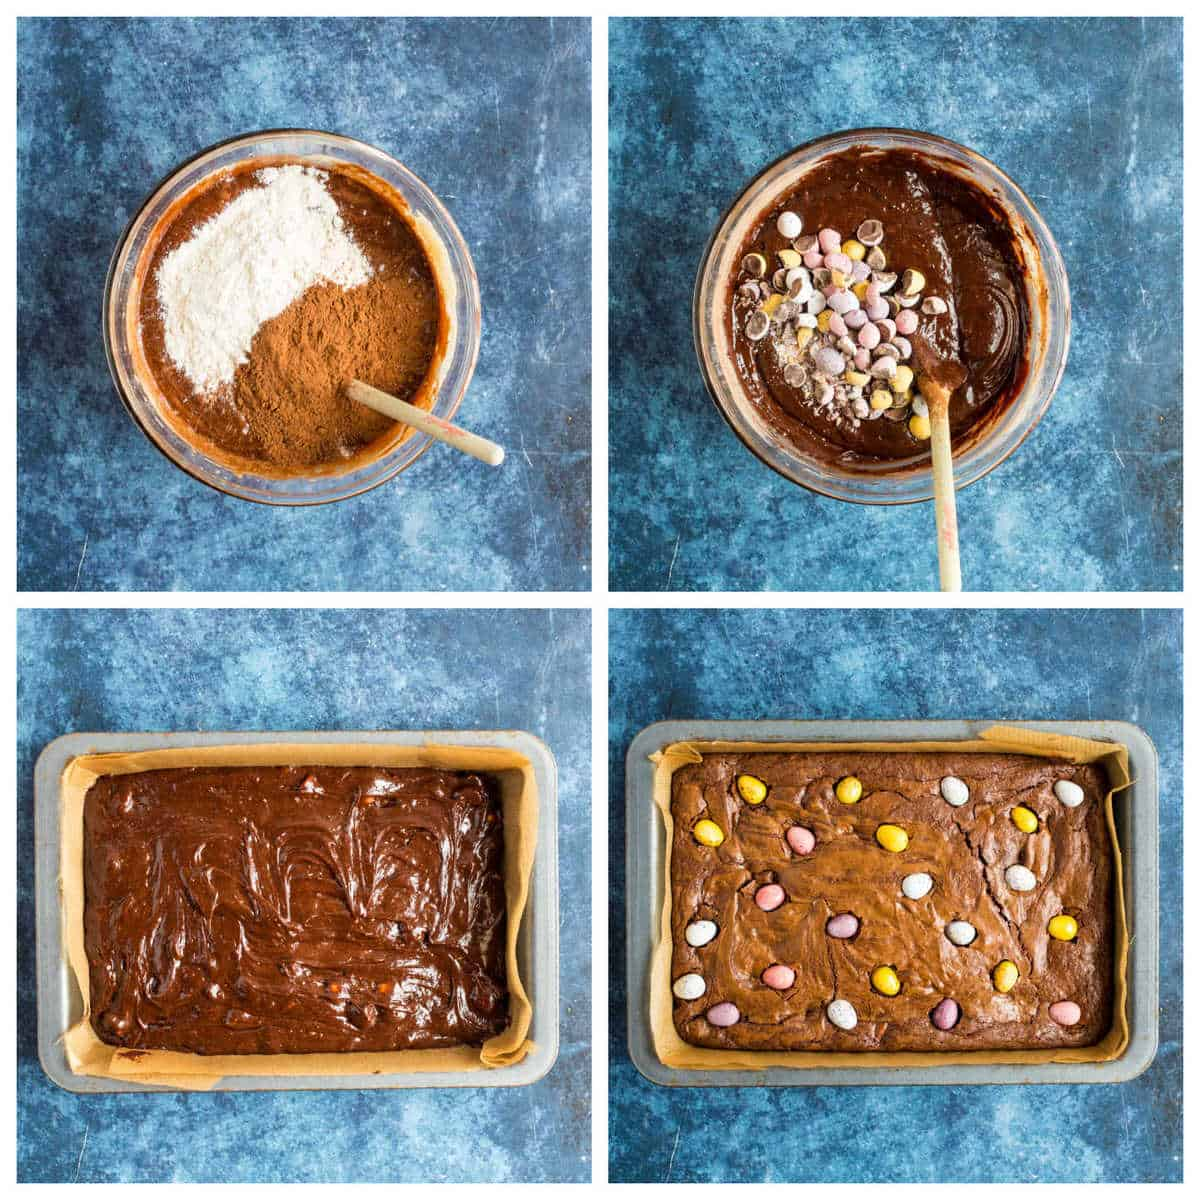 Step by step photo instructions for making mini egg brownies part 2.